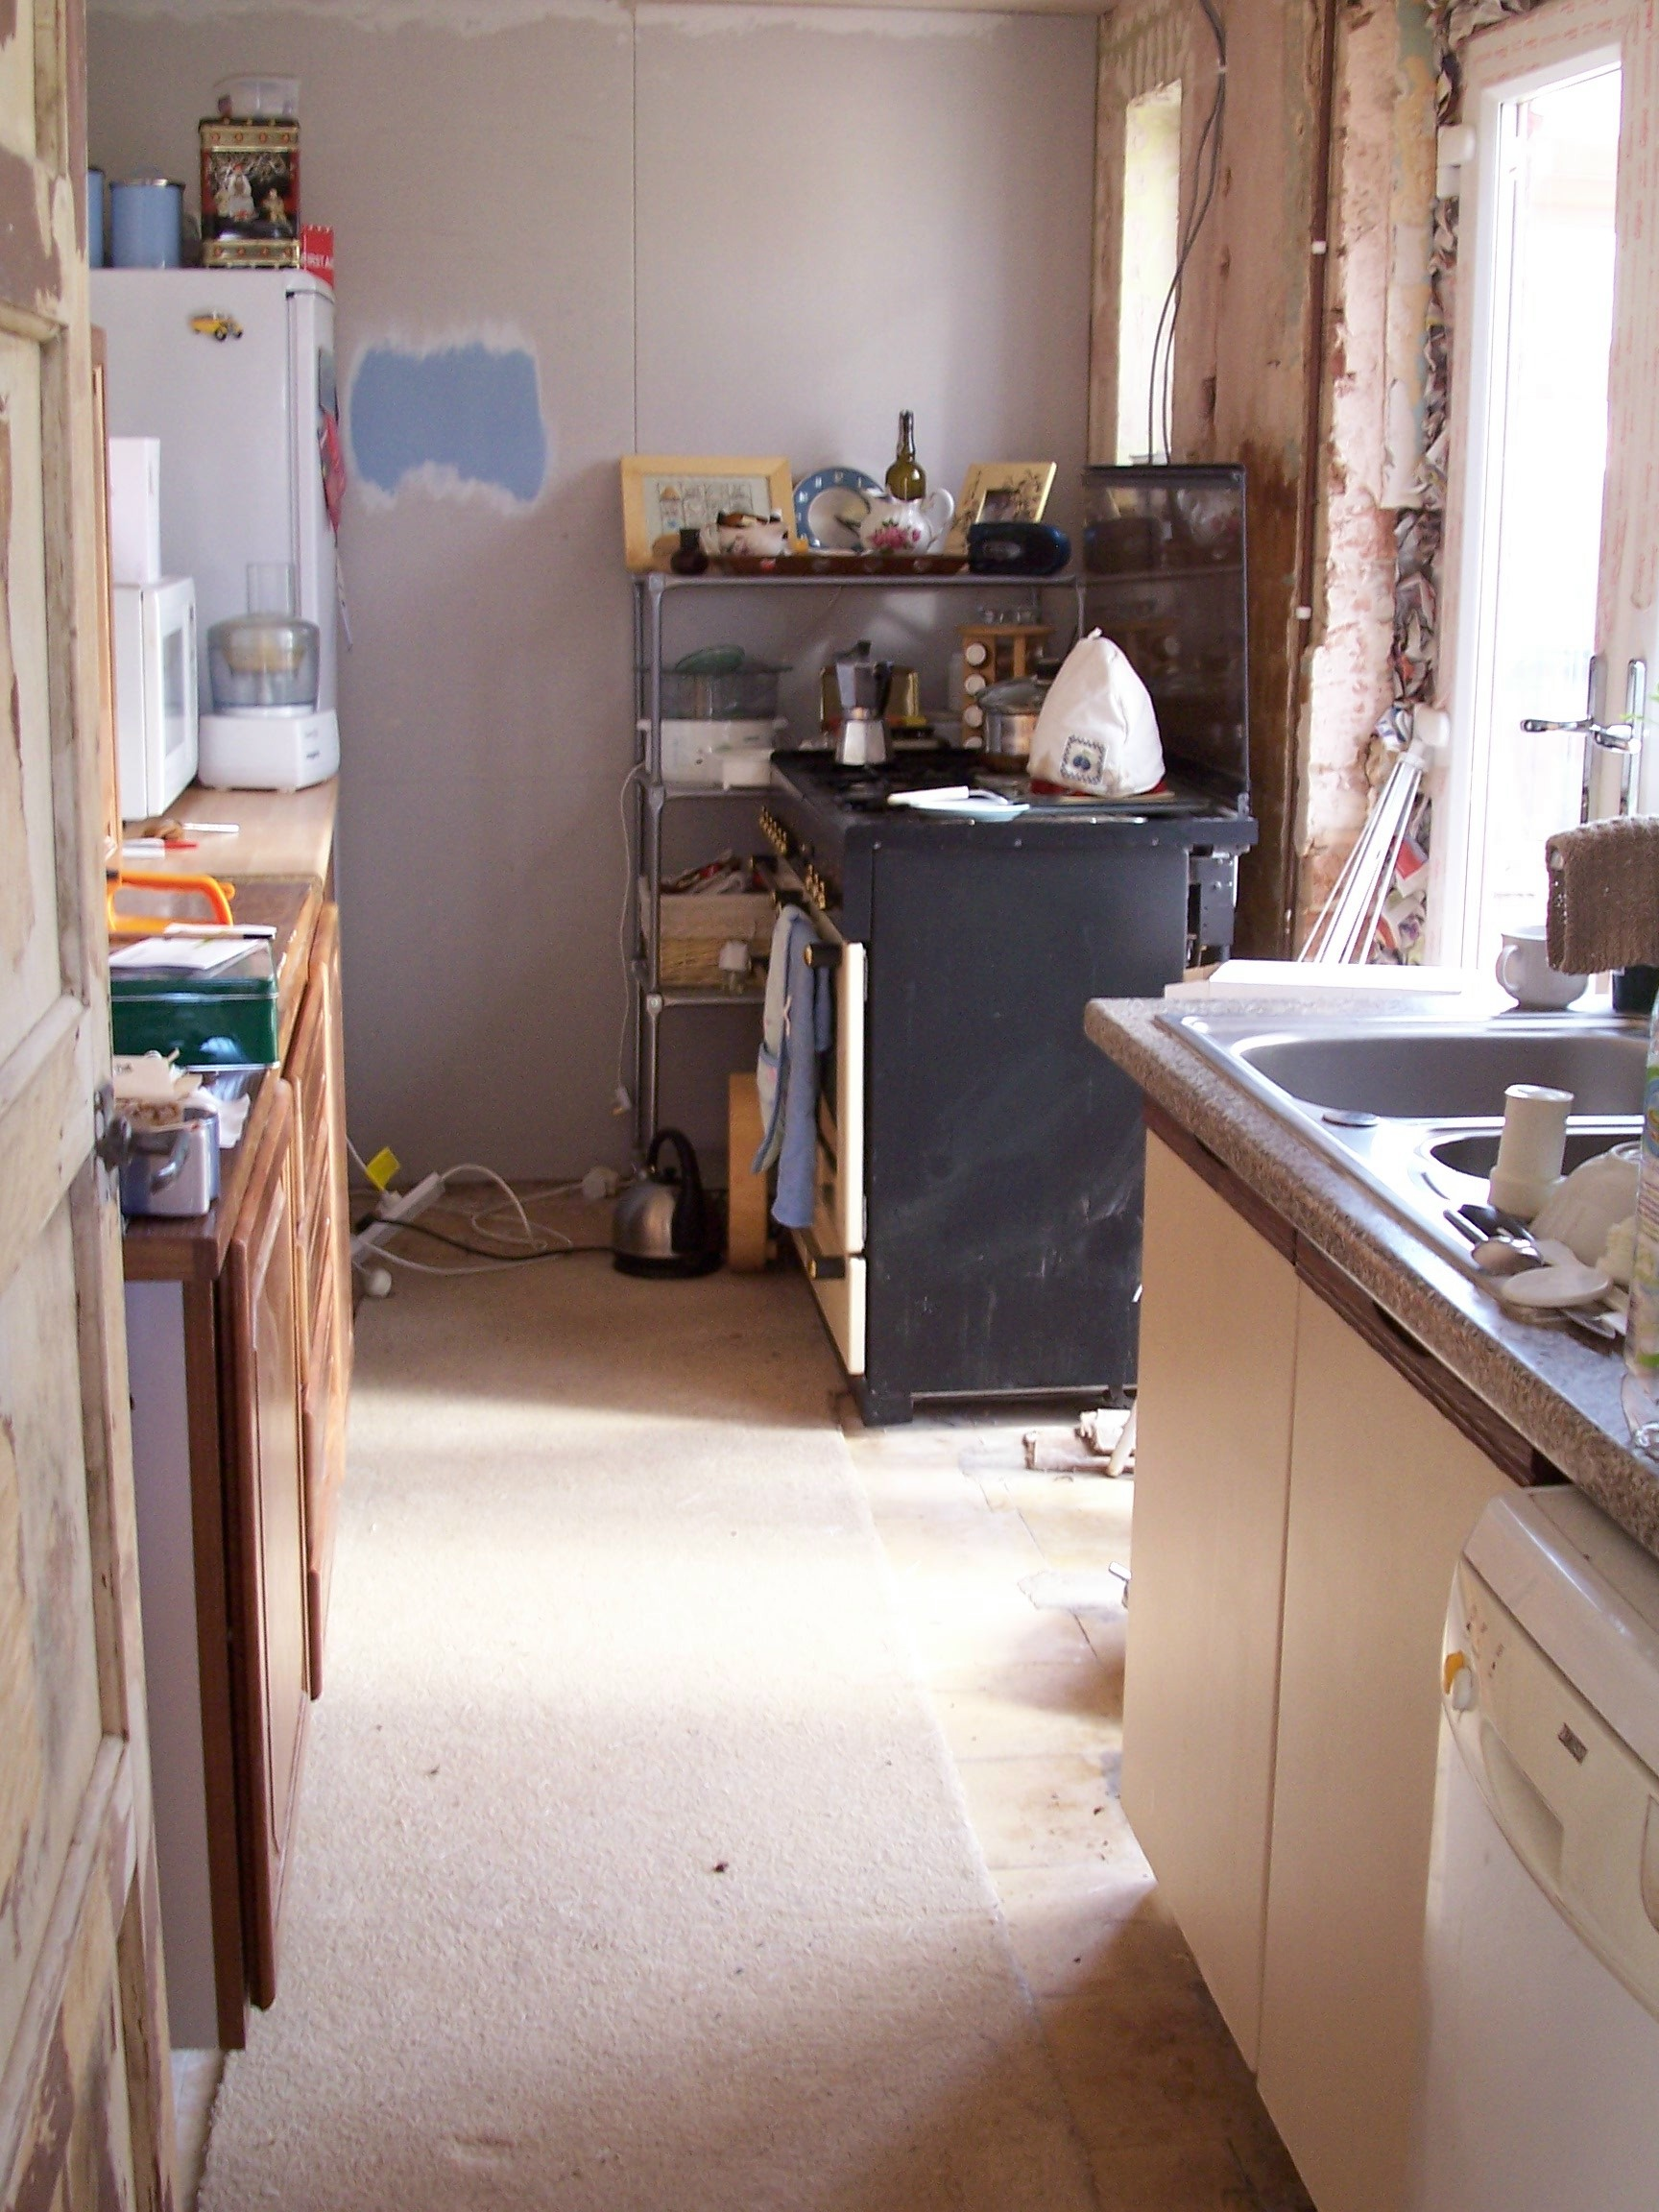 The countdown to a vintage/reclaimed kitchen refit - Steel Kitten